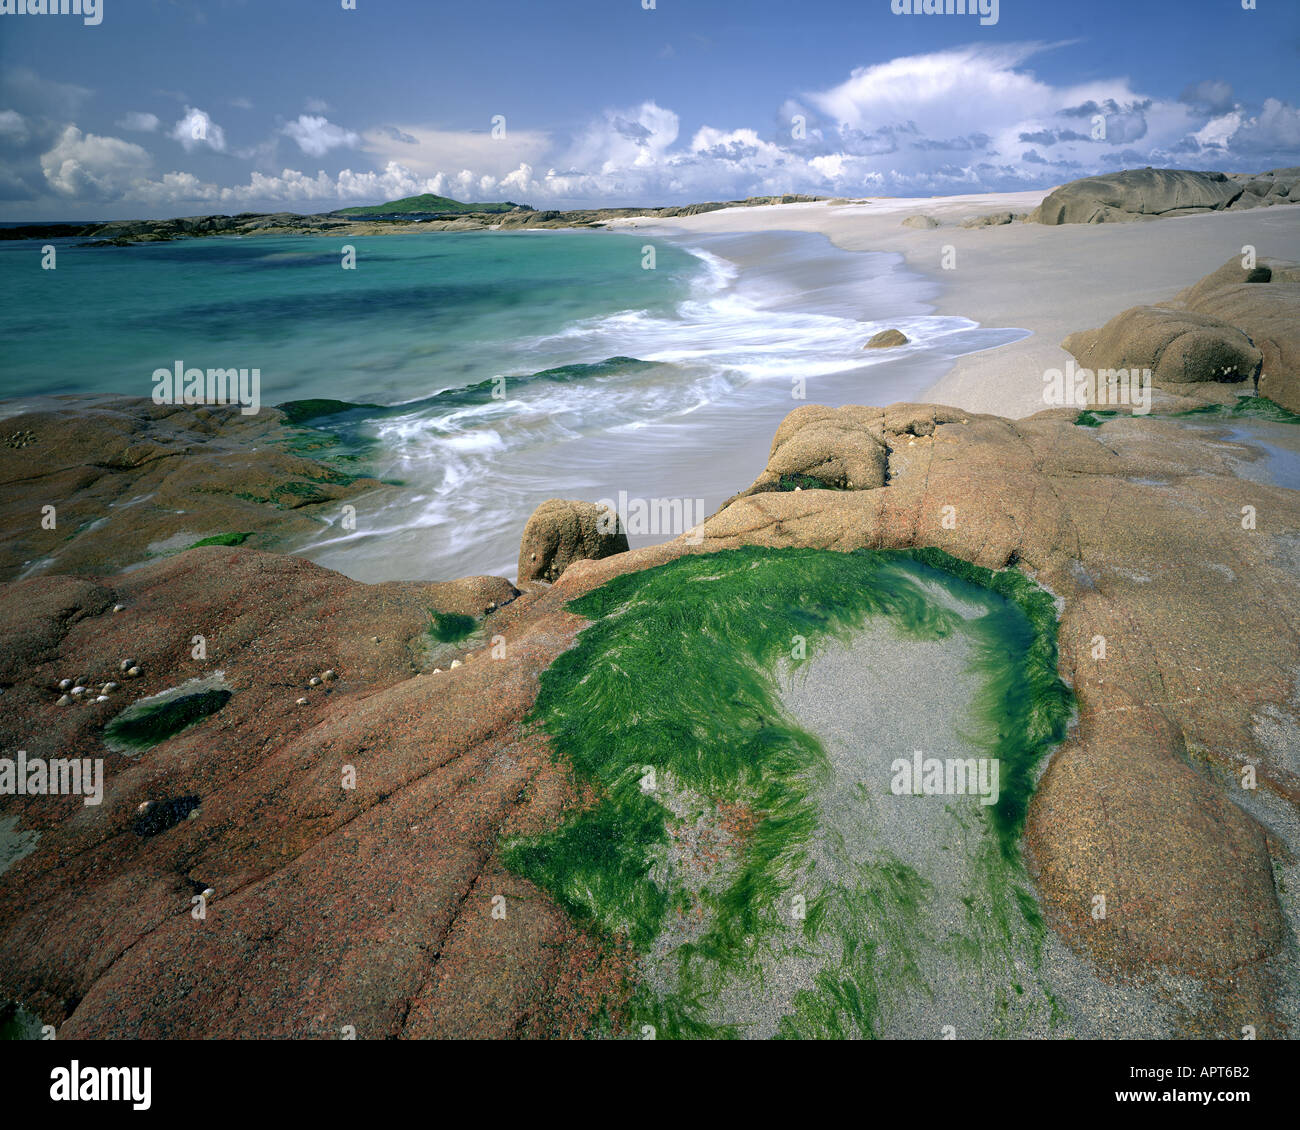 IE - CO. GALWAY: Beach on Omey Island - Stock Image